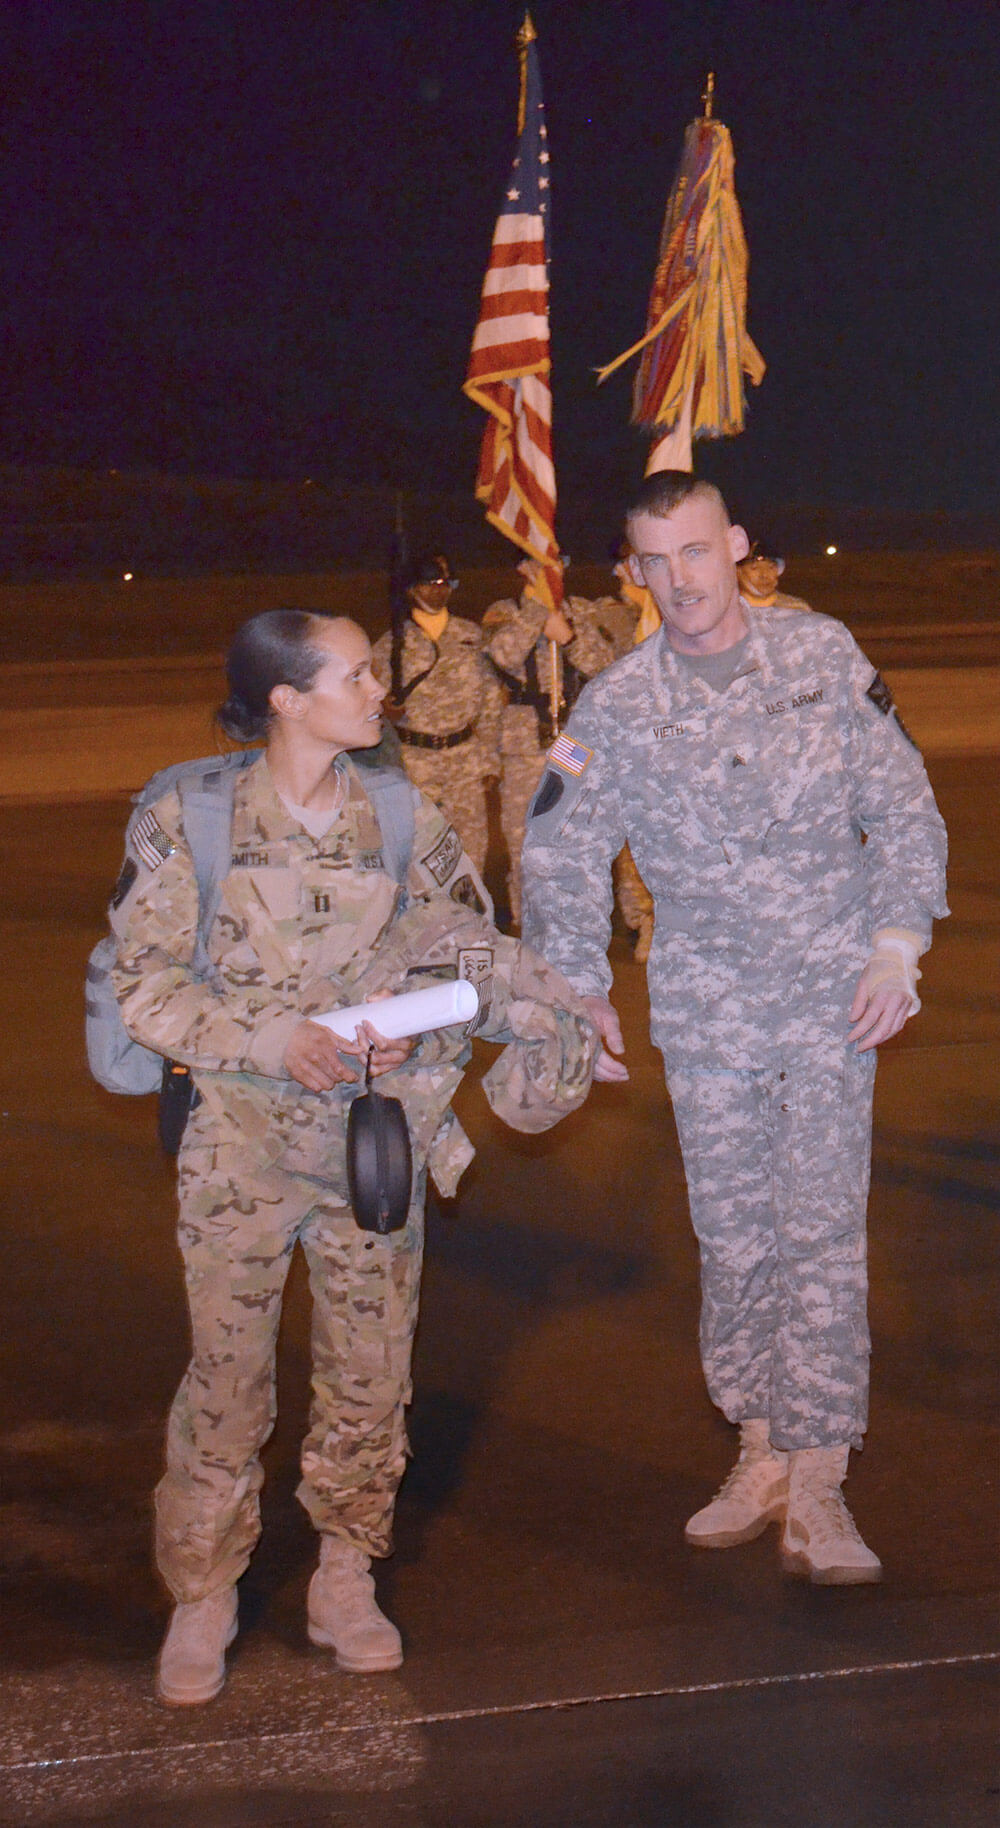 Then-SGT Albert Vieth meets CPT Nicole Washington at Fort Hood, Texas upon his return to the States after being shot in the arm during a 2012 deployment to Afghanistan. Photo courtesy Idaho Army National Guard